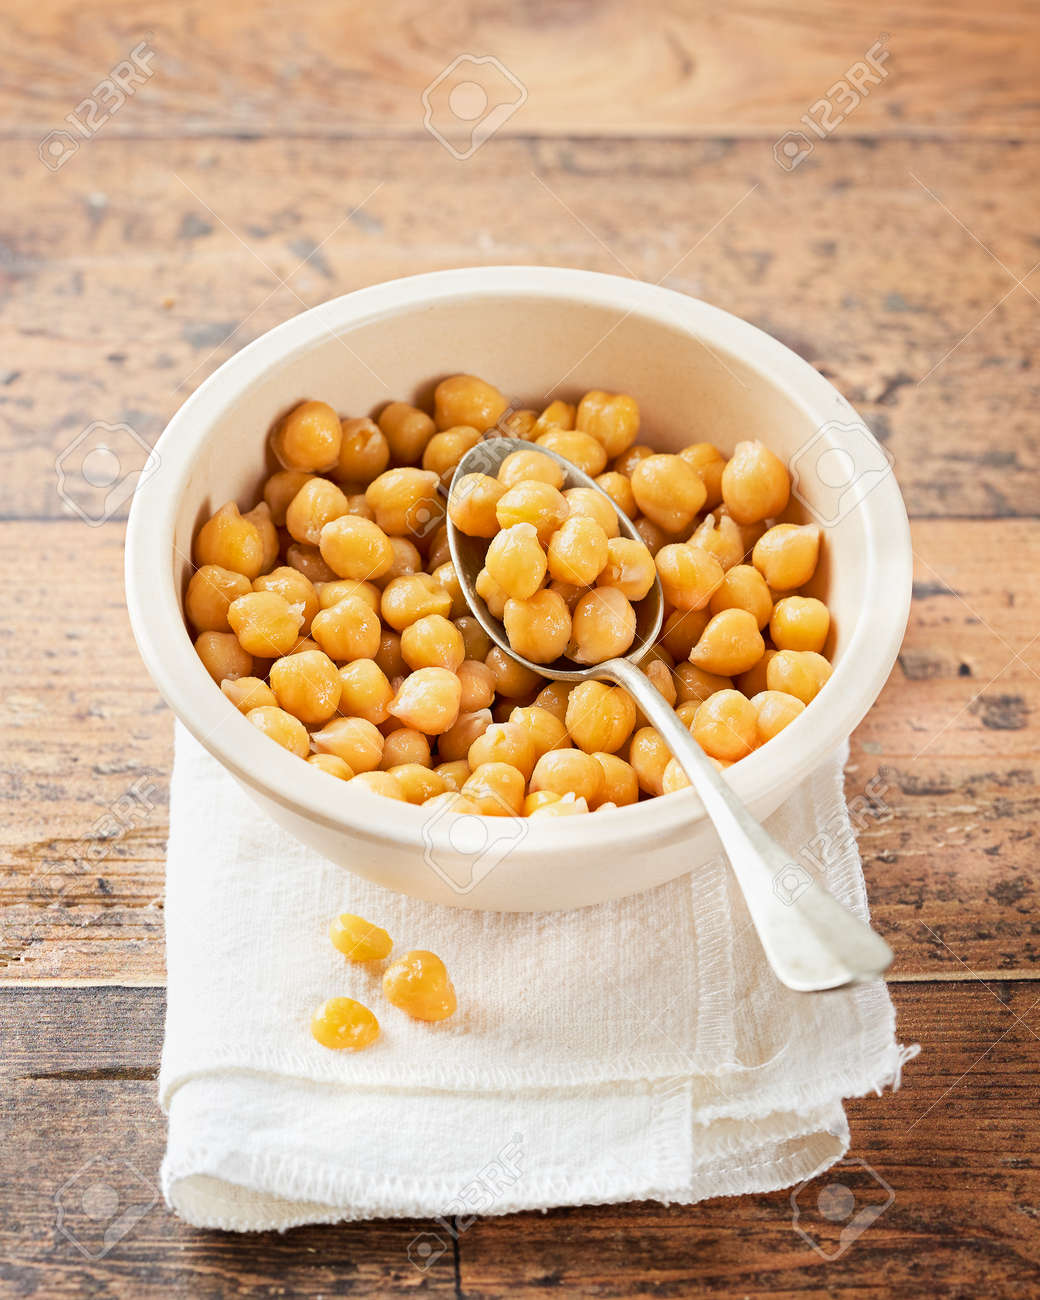 Cooked Chickpeas on a bowl wooden rustic background. copy Space, selective focus. Nutrition, Healthy, vegetarian food concept. - 173232643